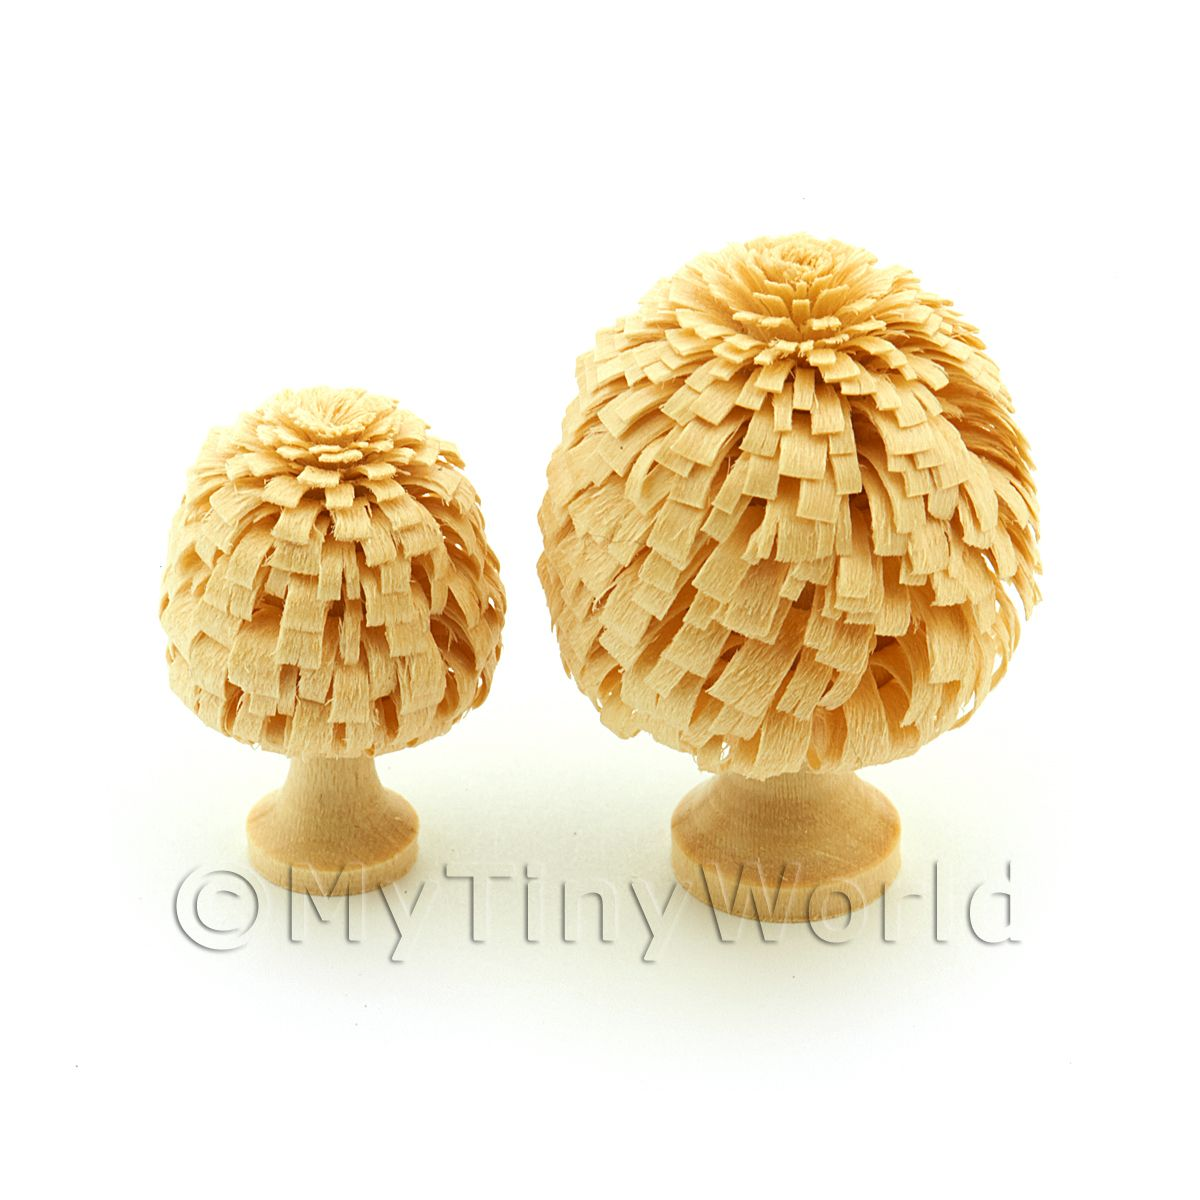 2 Dolls House Classic Shaped Unpainted Trees 30 And 40mm